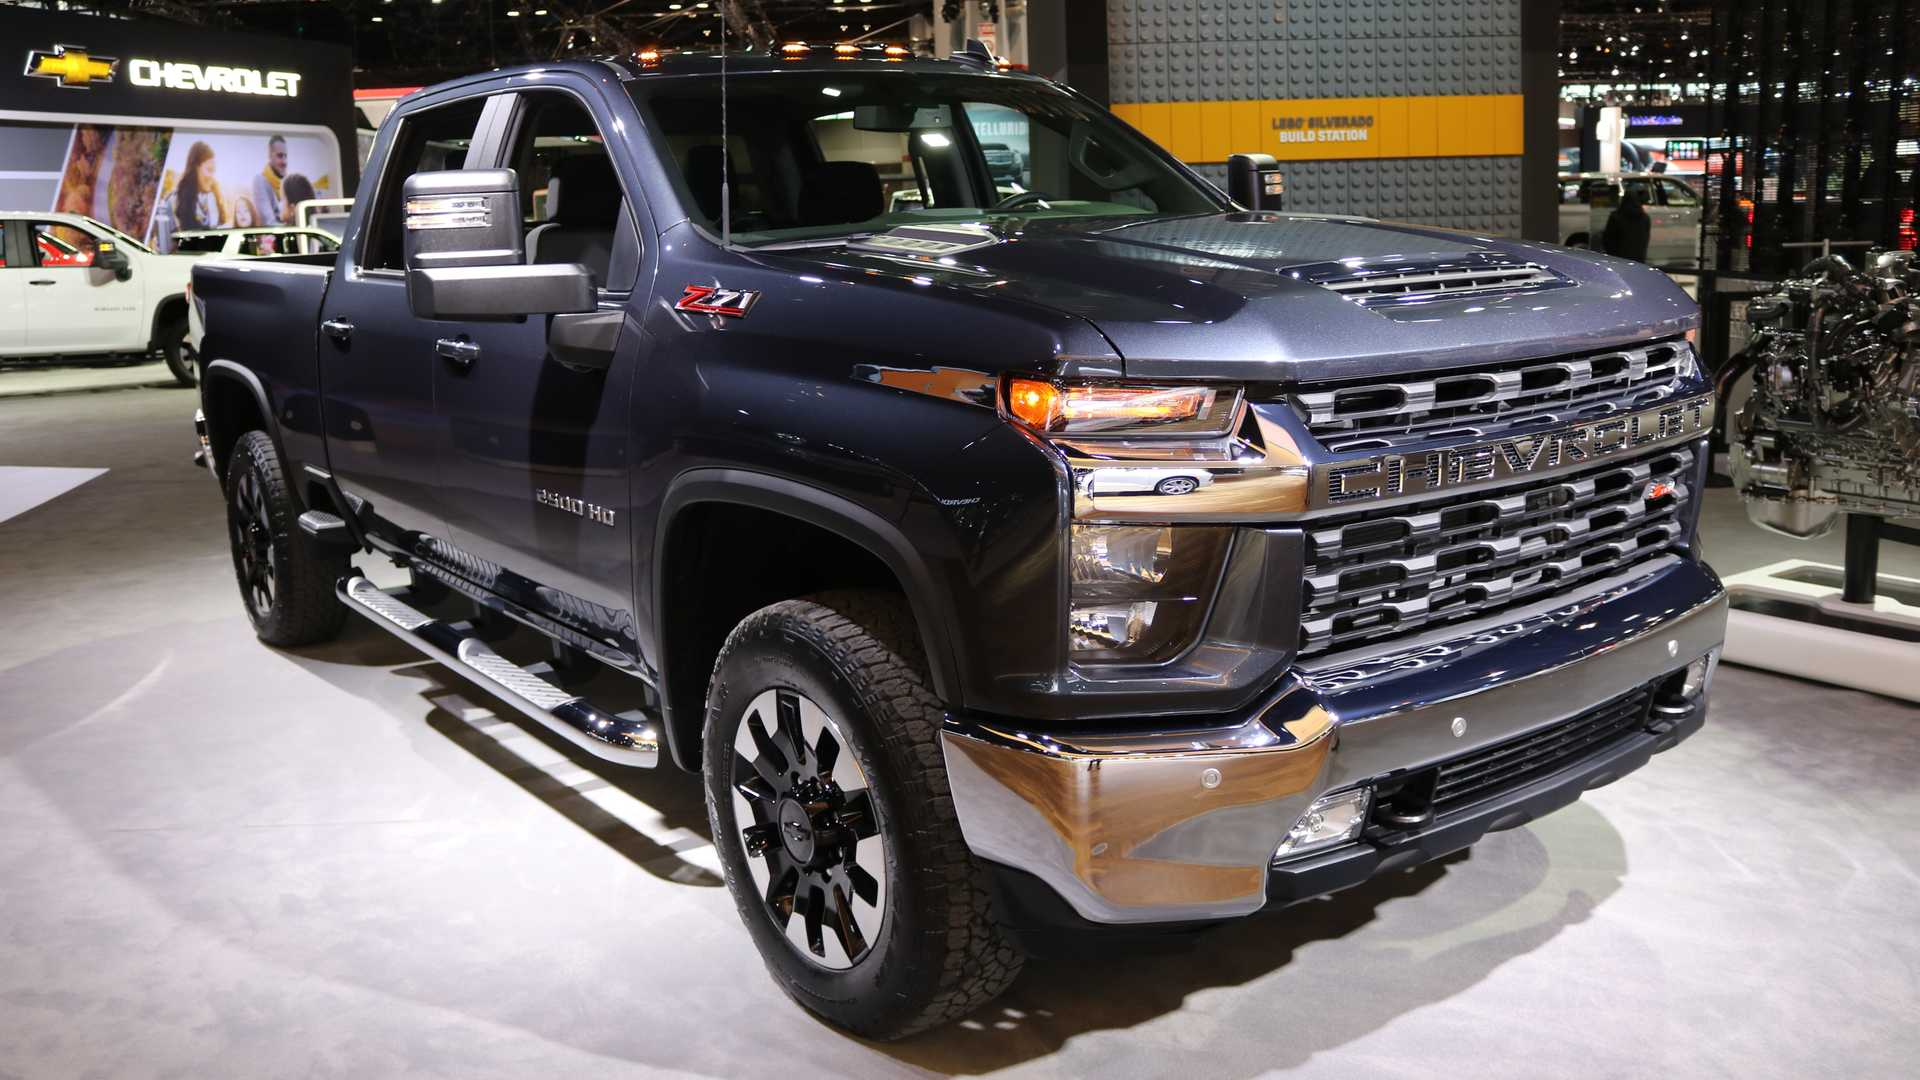 53 All New 2020 Chevy Silverado Hd Performance and New Engine